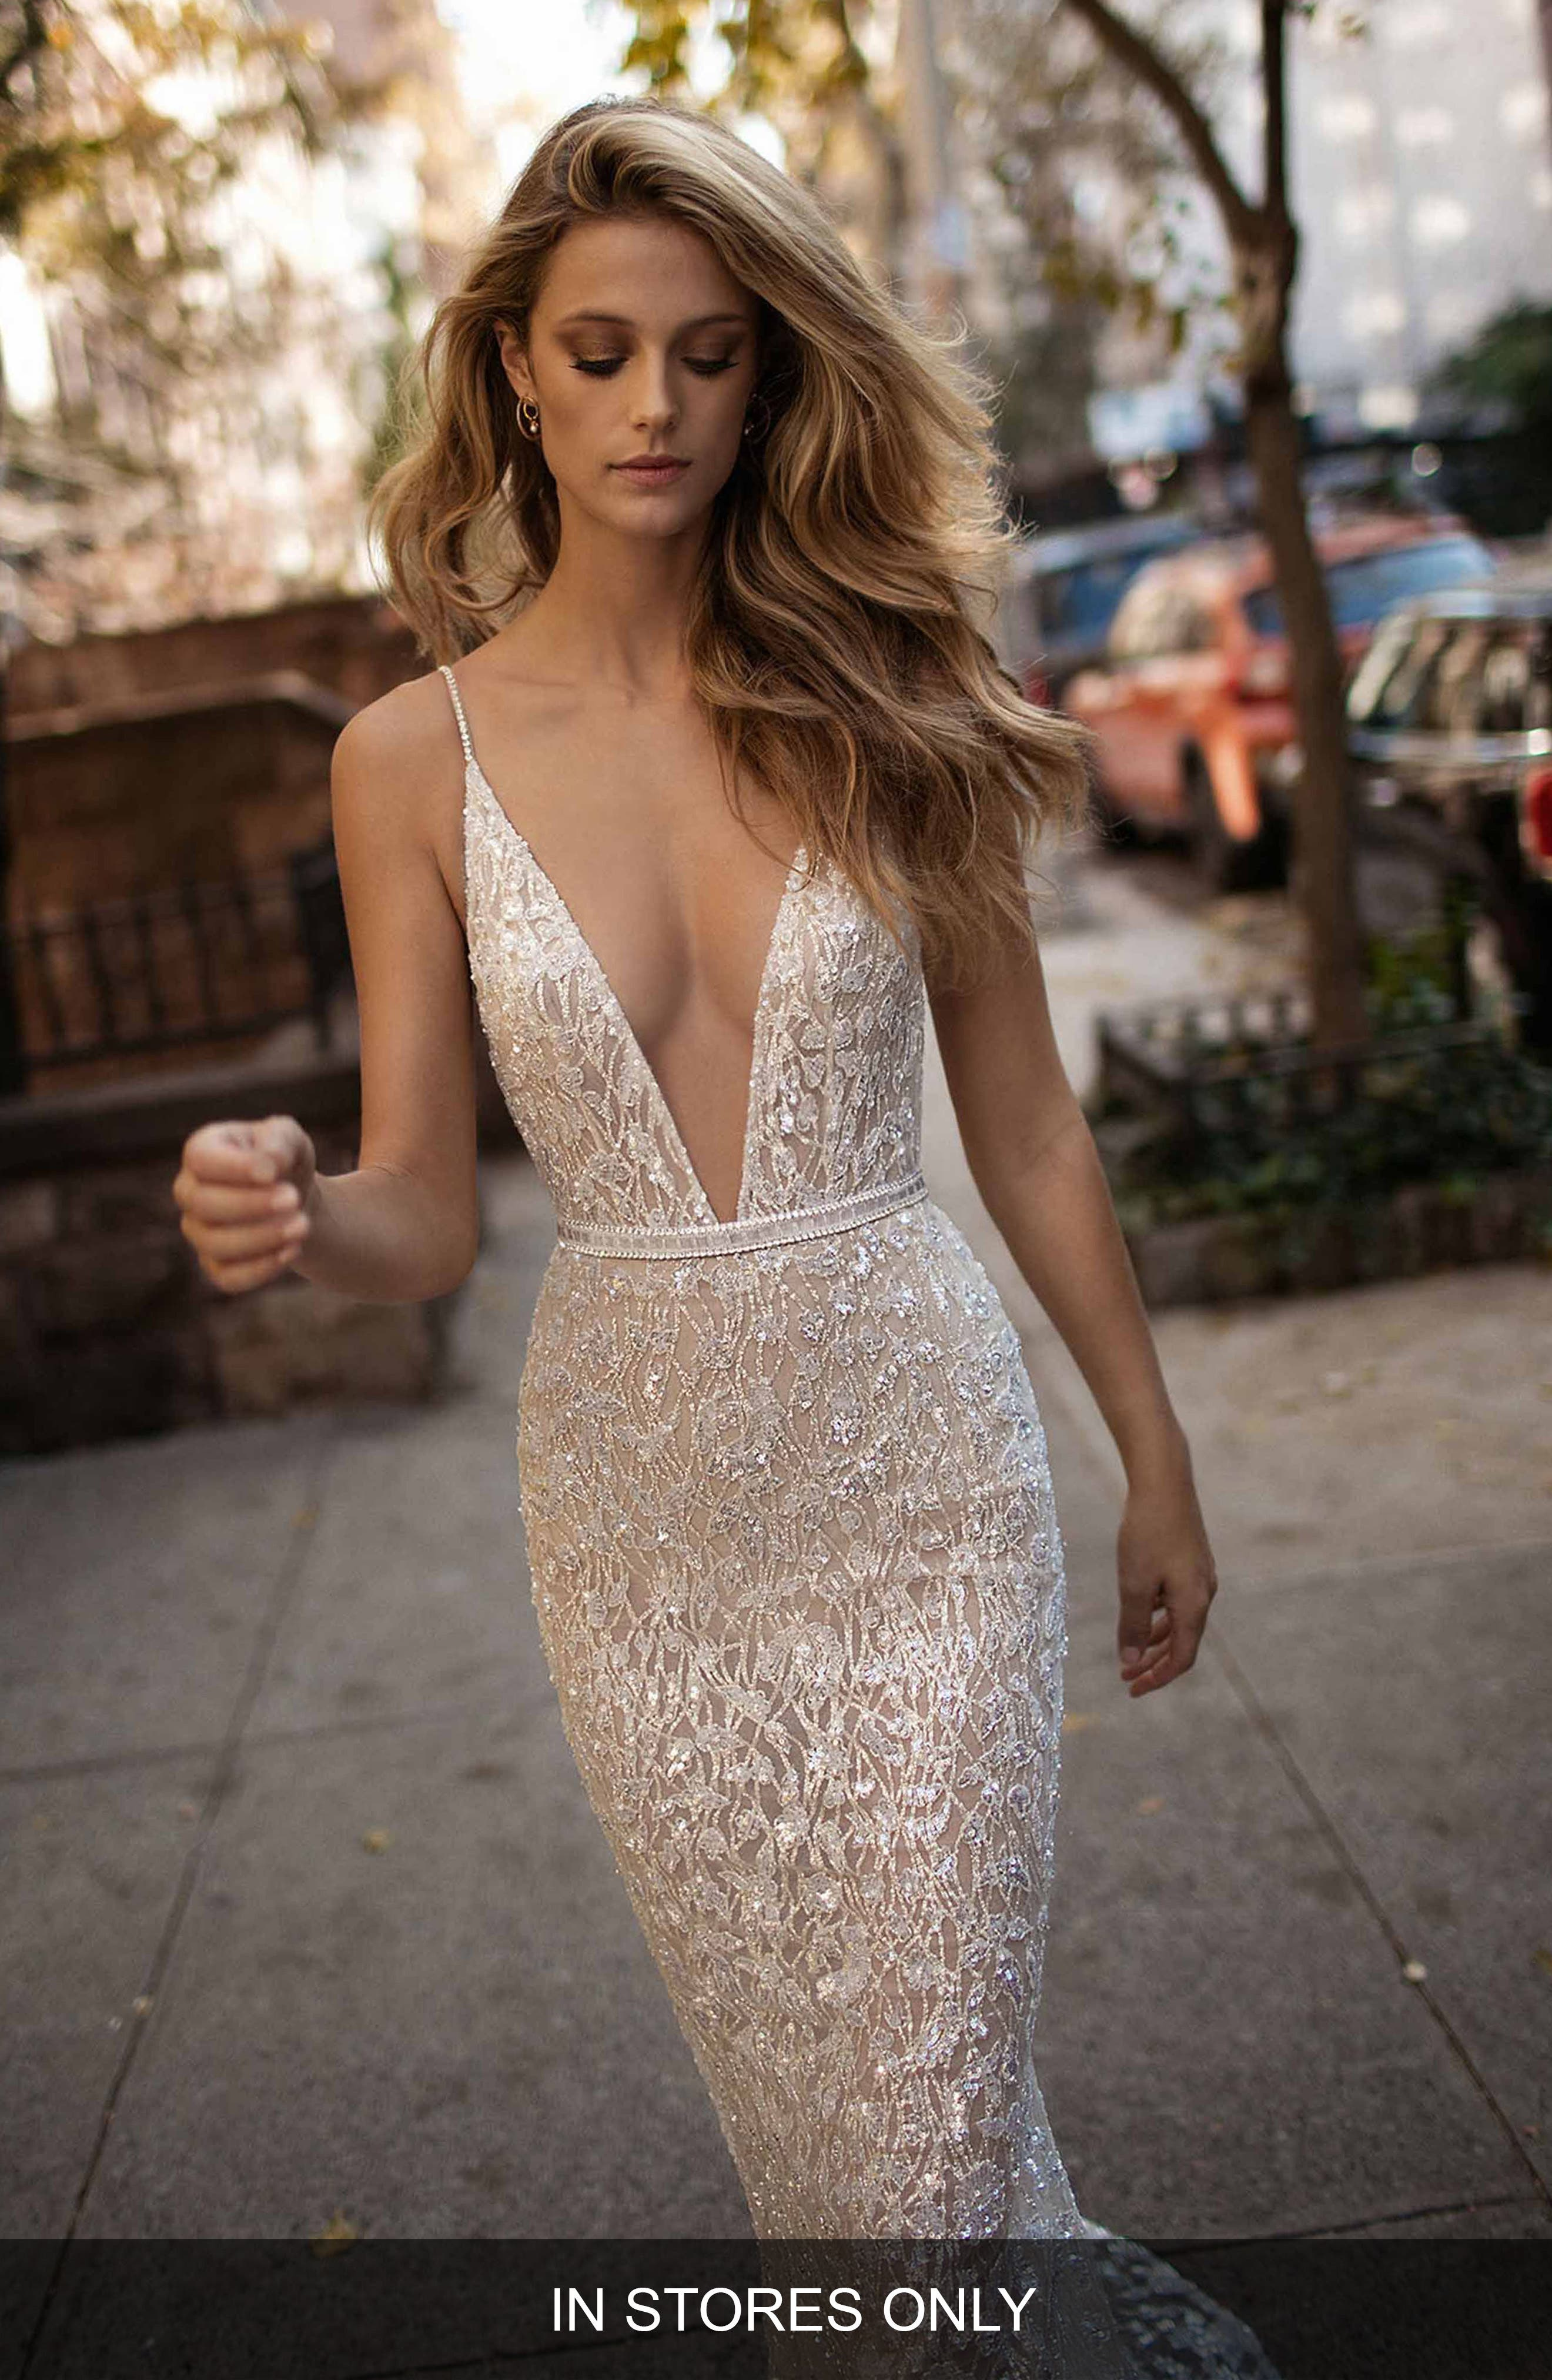 Alternate Image 1 Selected - Berta Spaghetti Strap Beaded Mesh Mermaid Gown (In Selected Stores Only)